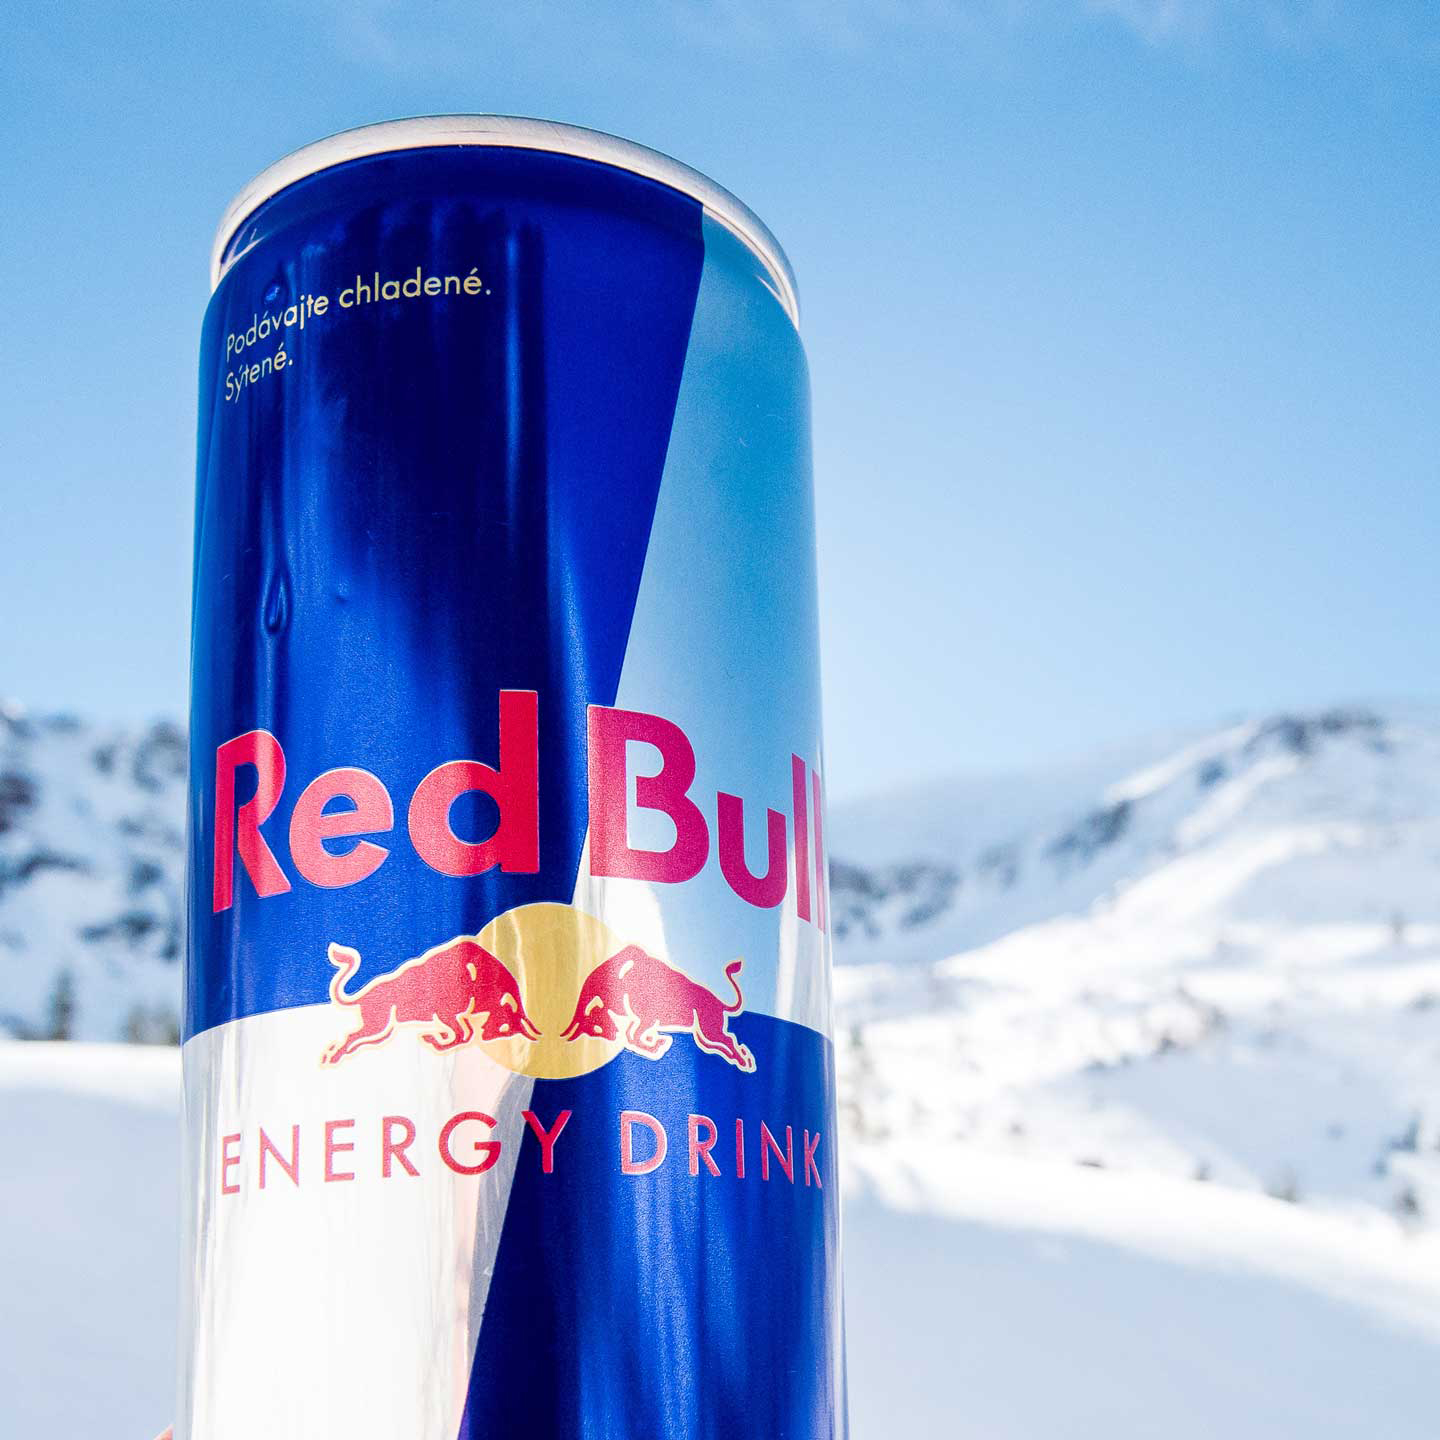 Red bull can with snowy landscape as backdrop